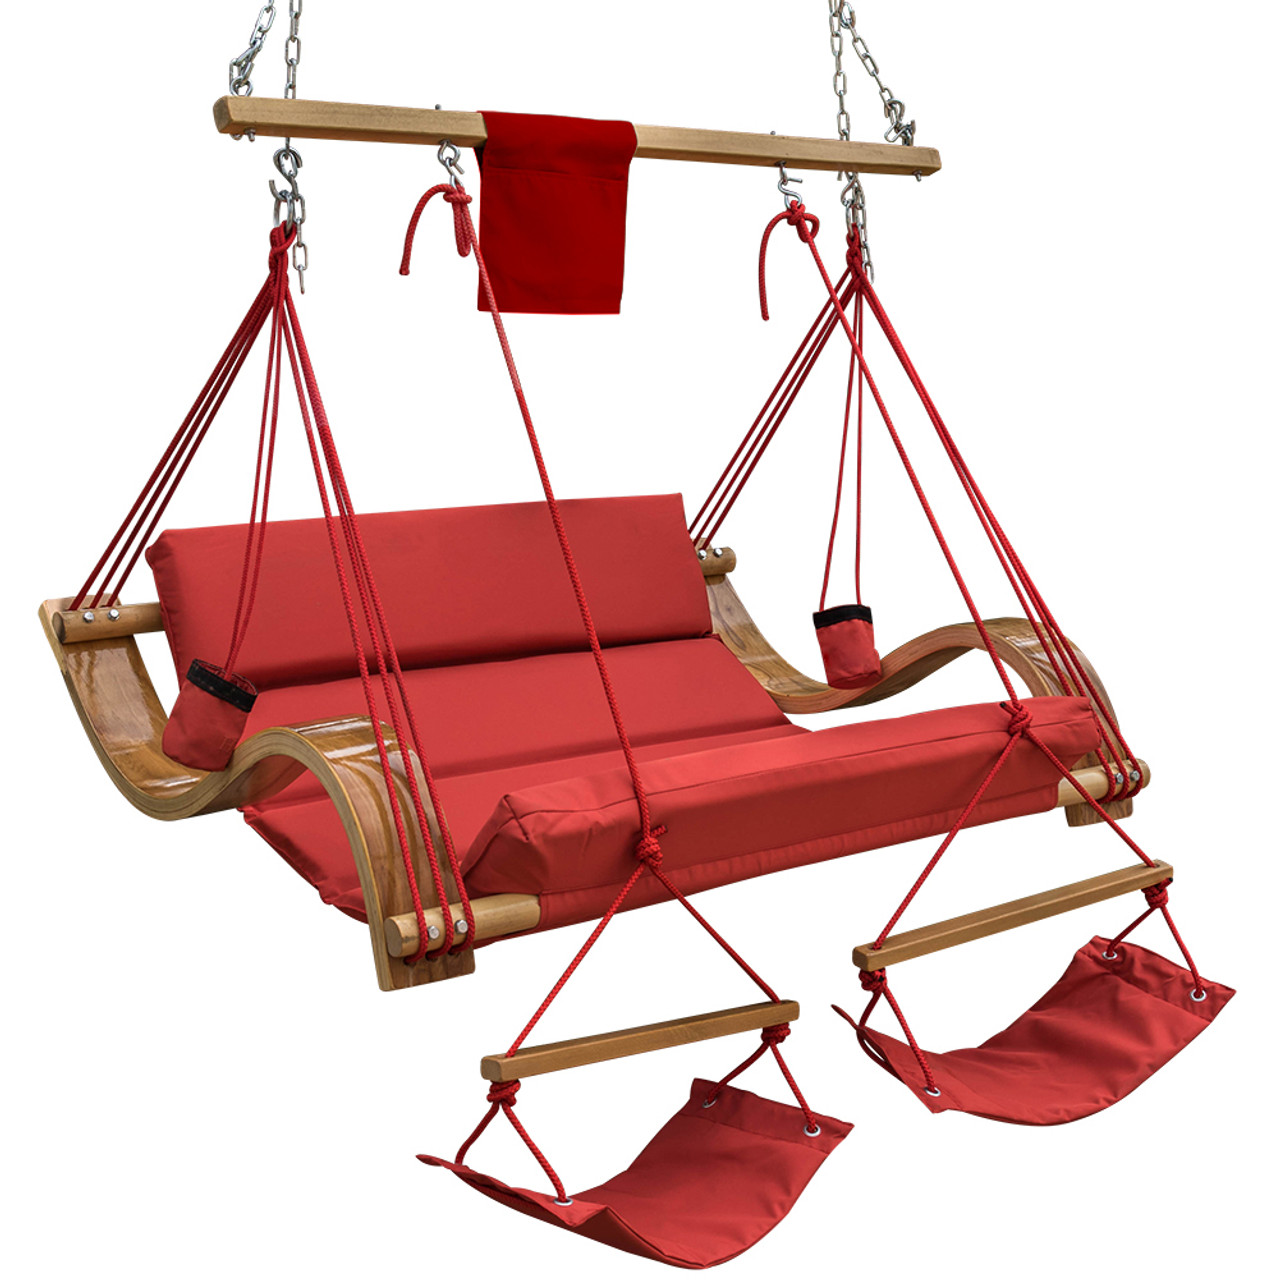 Deluxe Oversized Double Hanging Rope Chair Cotton Padded Swing Chair Wood  Arc Hammock Seat With Cup Holder,Footrestu0026Hardware ...